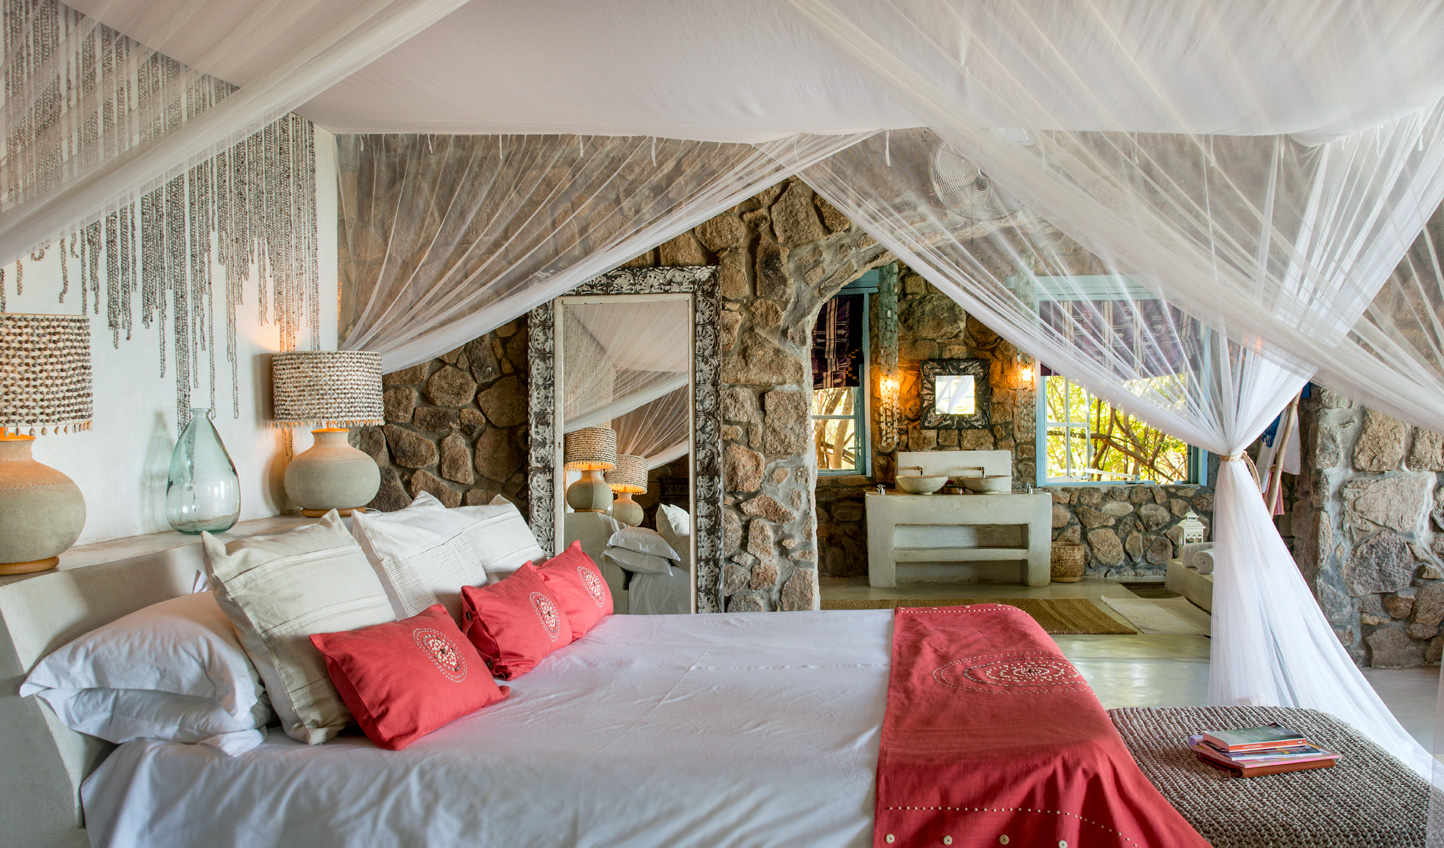 Rustic chic bedrooms